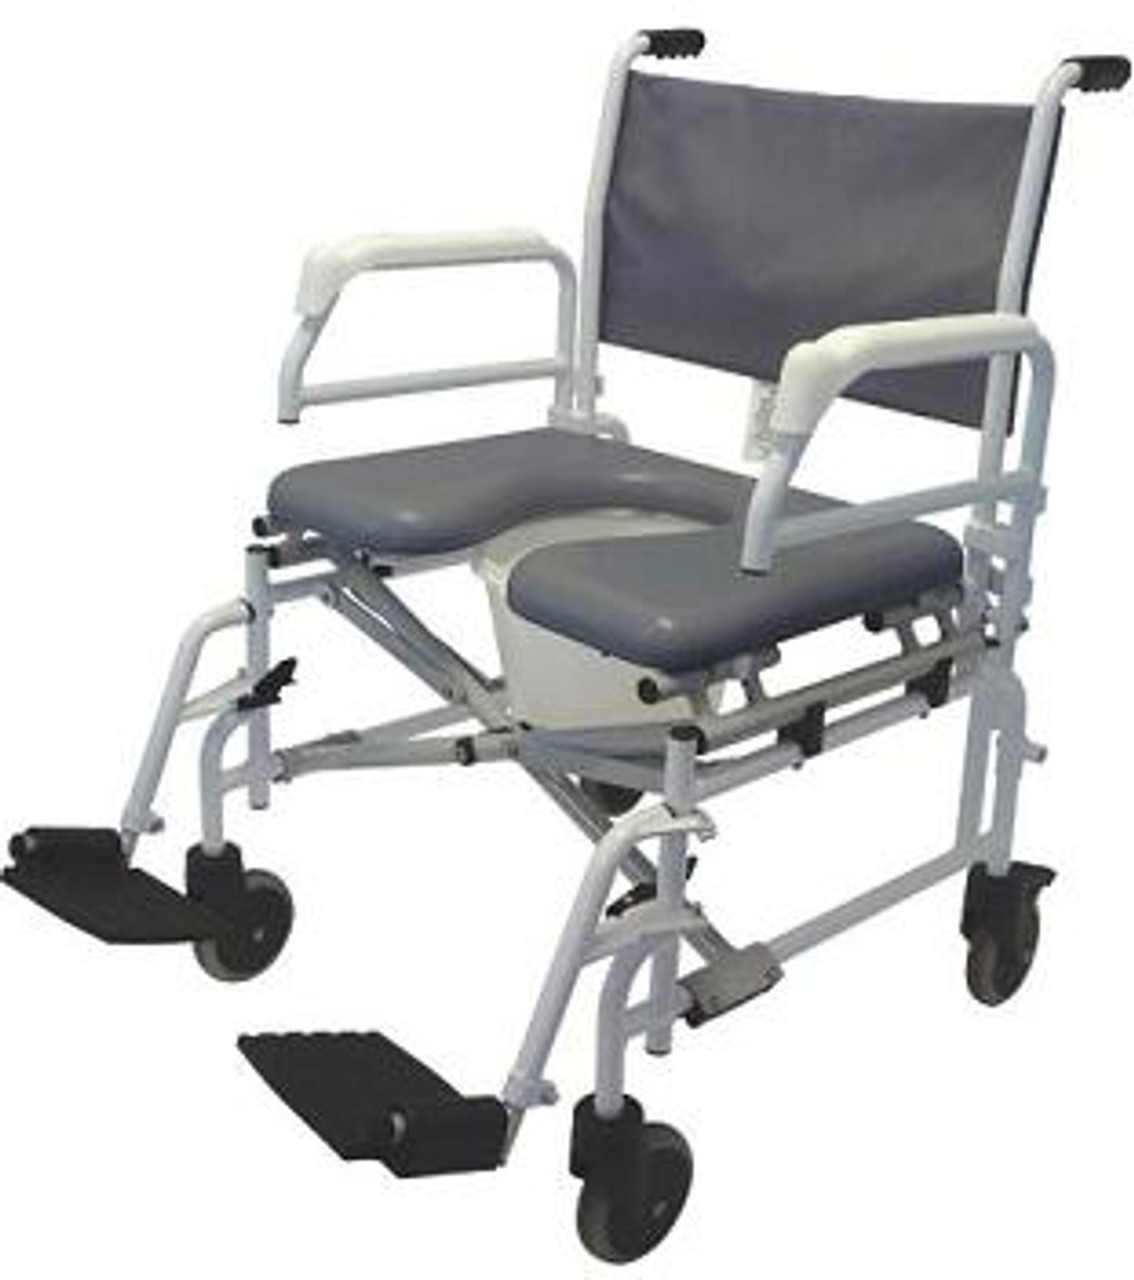 Heavy Duty Rolling Shower Commode Chair S10 by Tuffcare